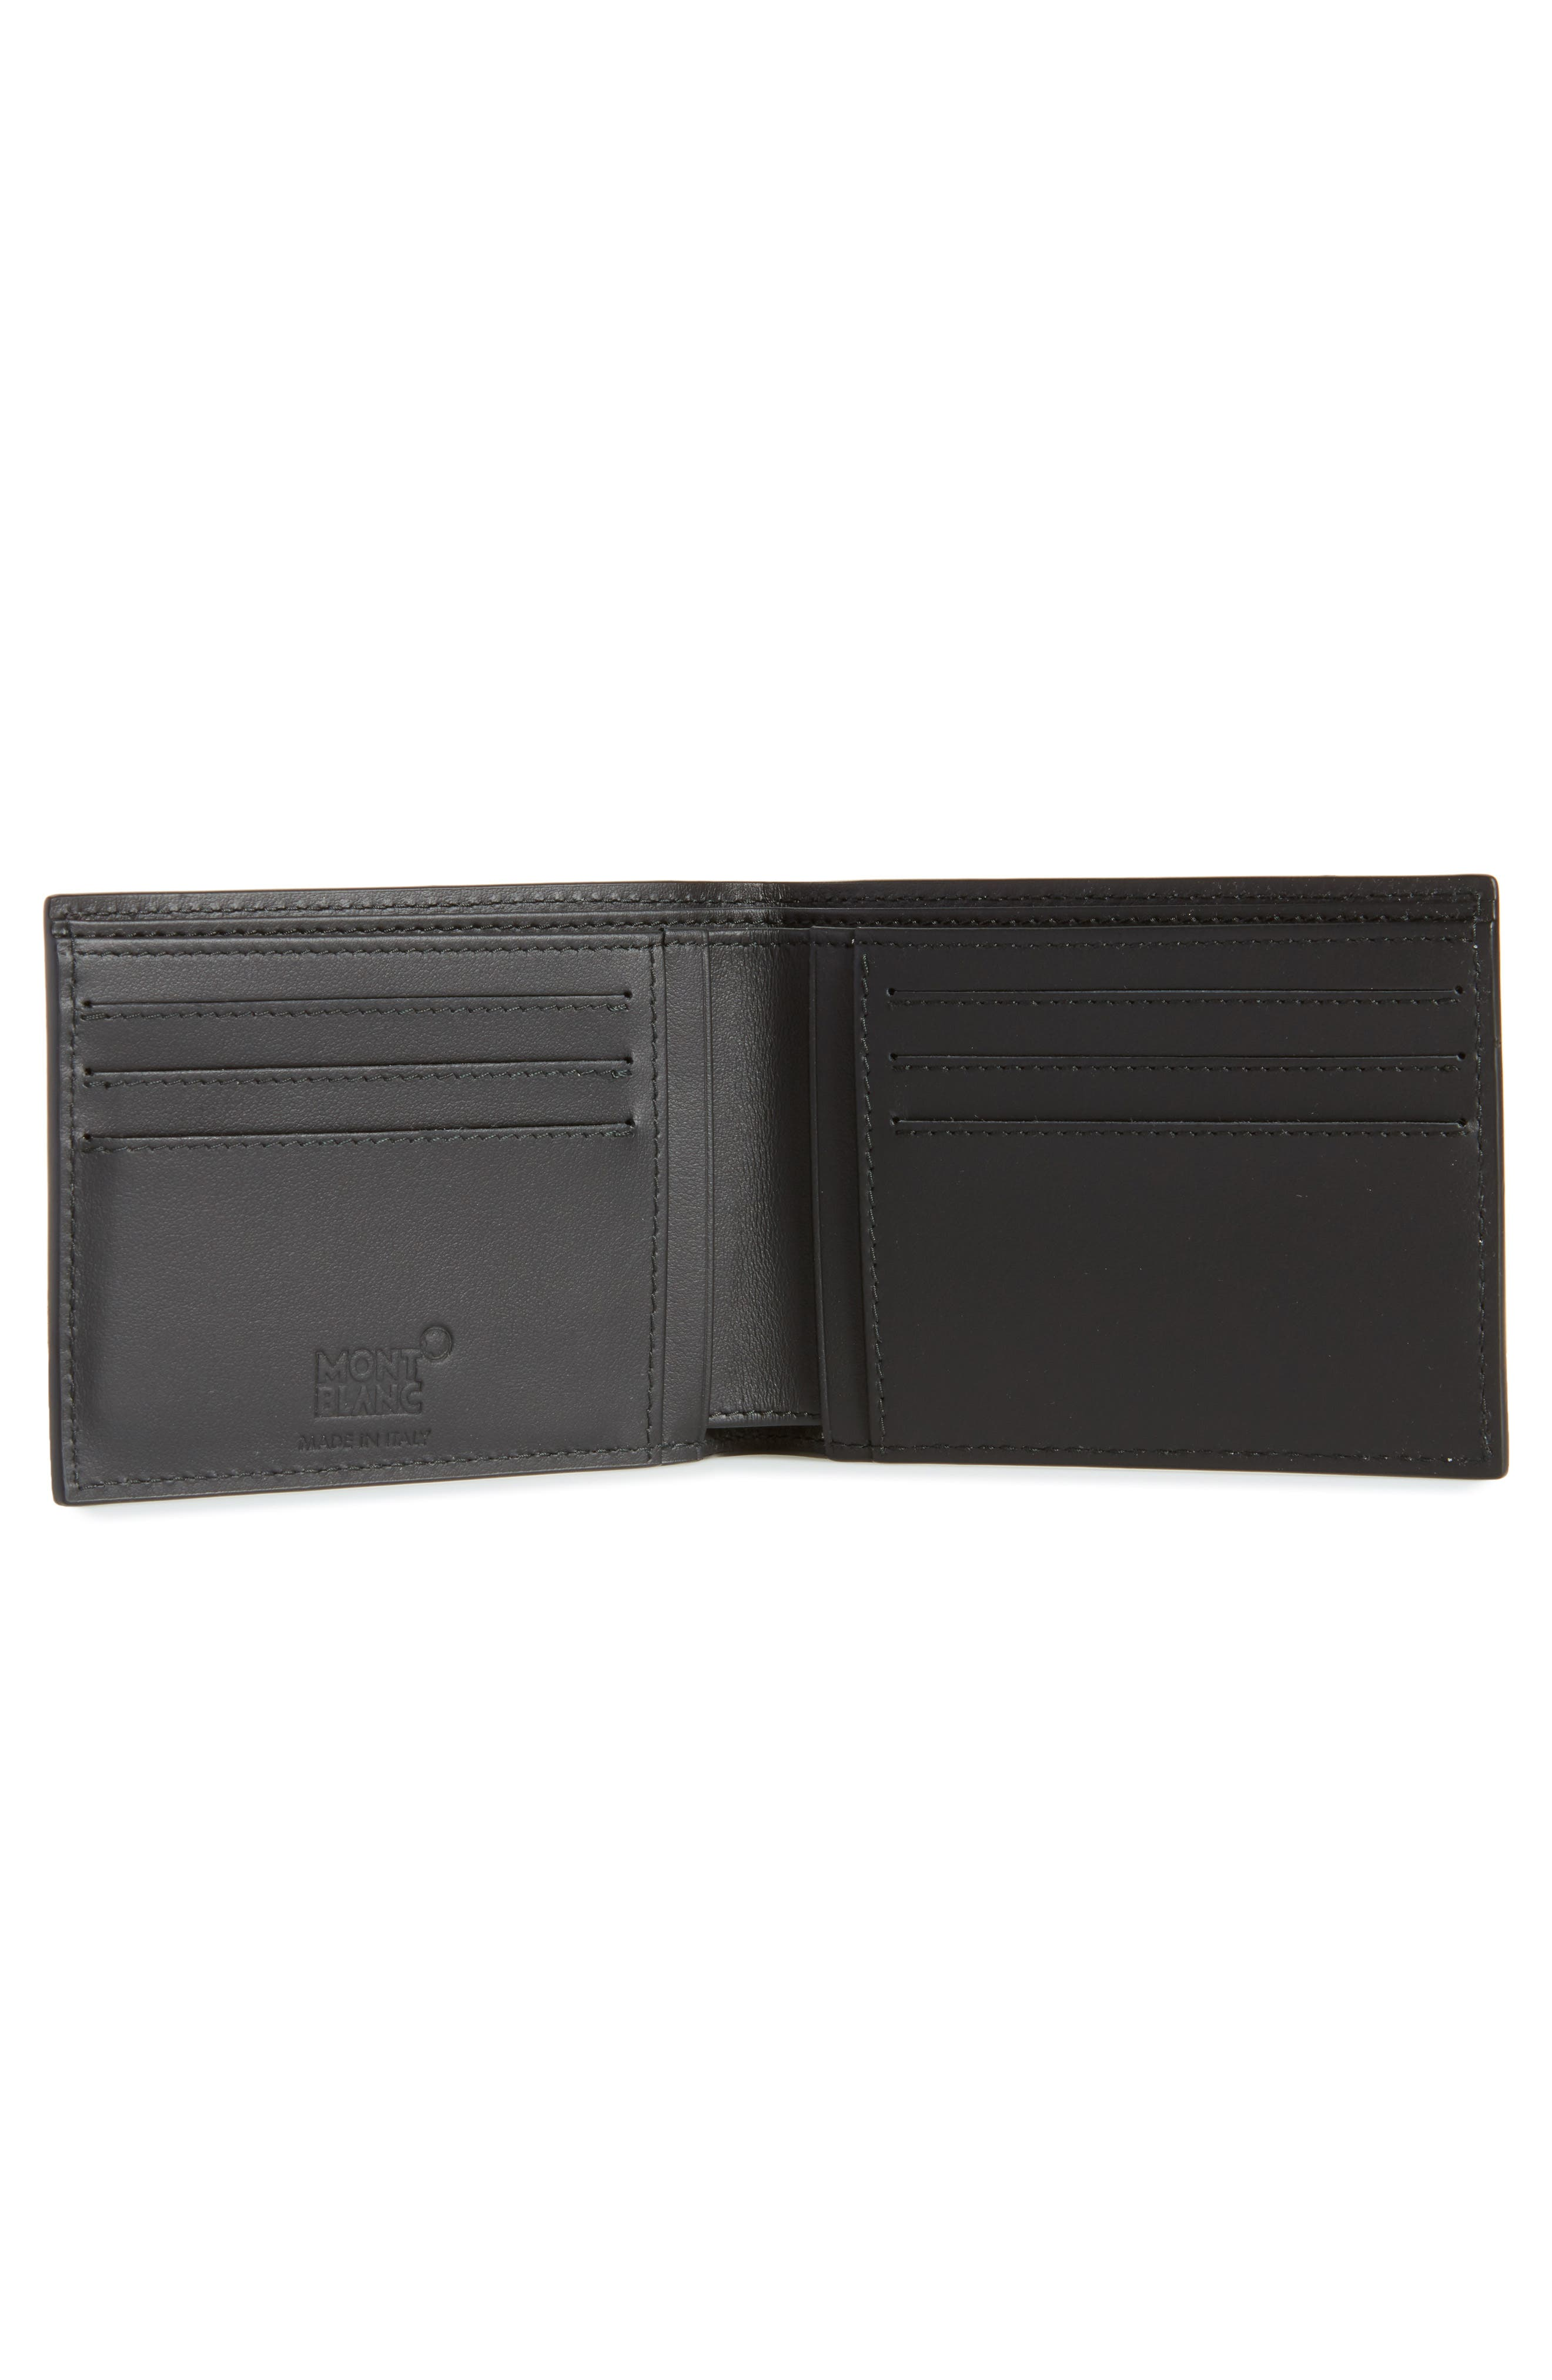 Extreme Leather Wallet,                             Alternate thumbnail 2, color,                             001